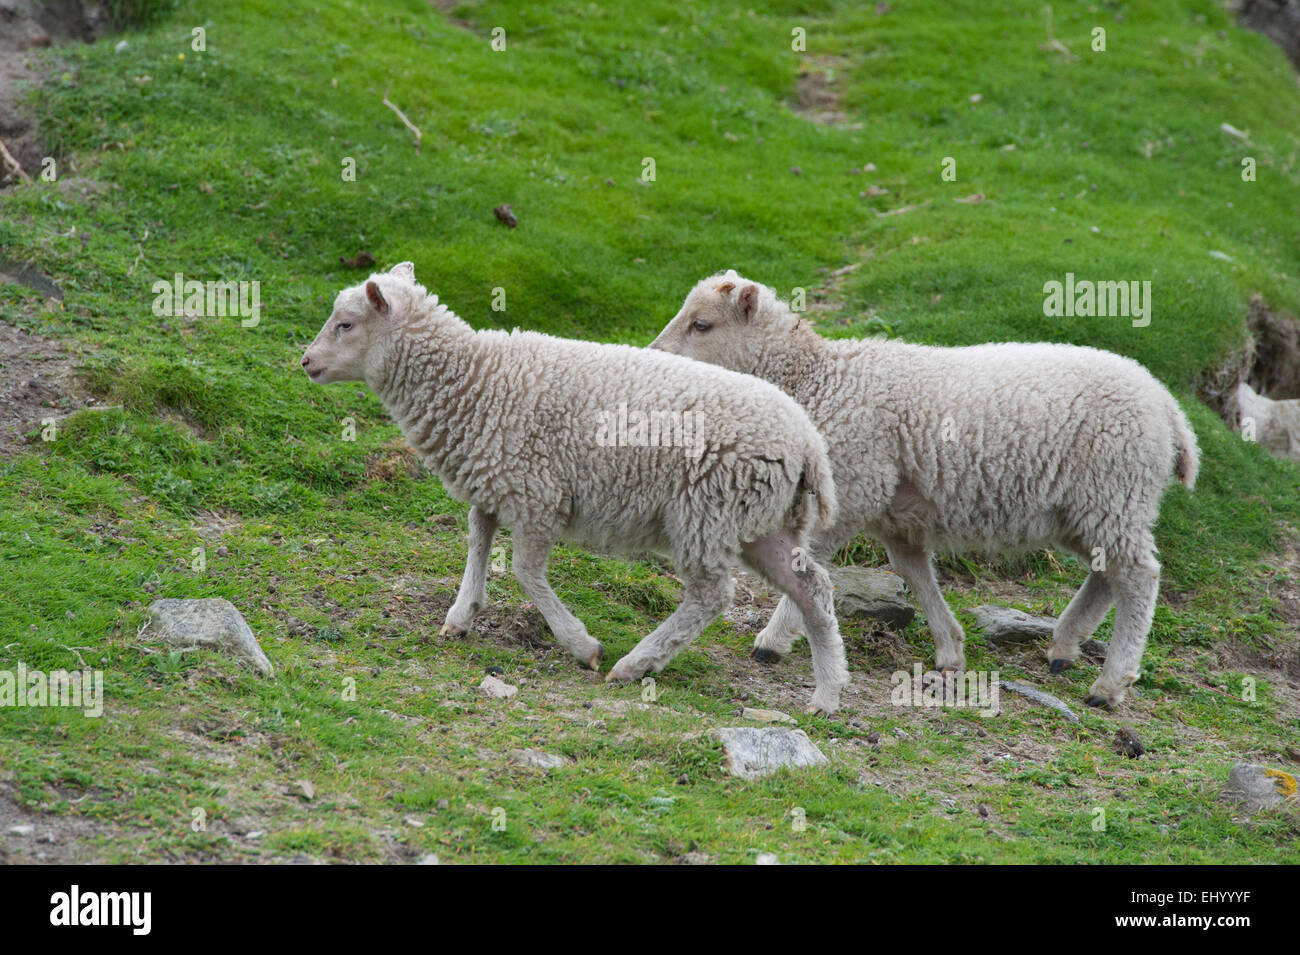 The Sheep that supply the famous Fair Isle wool, wondering across the grass on Fair Isle in the Shetland Islands - Stock Image